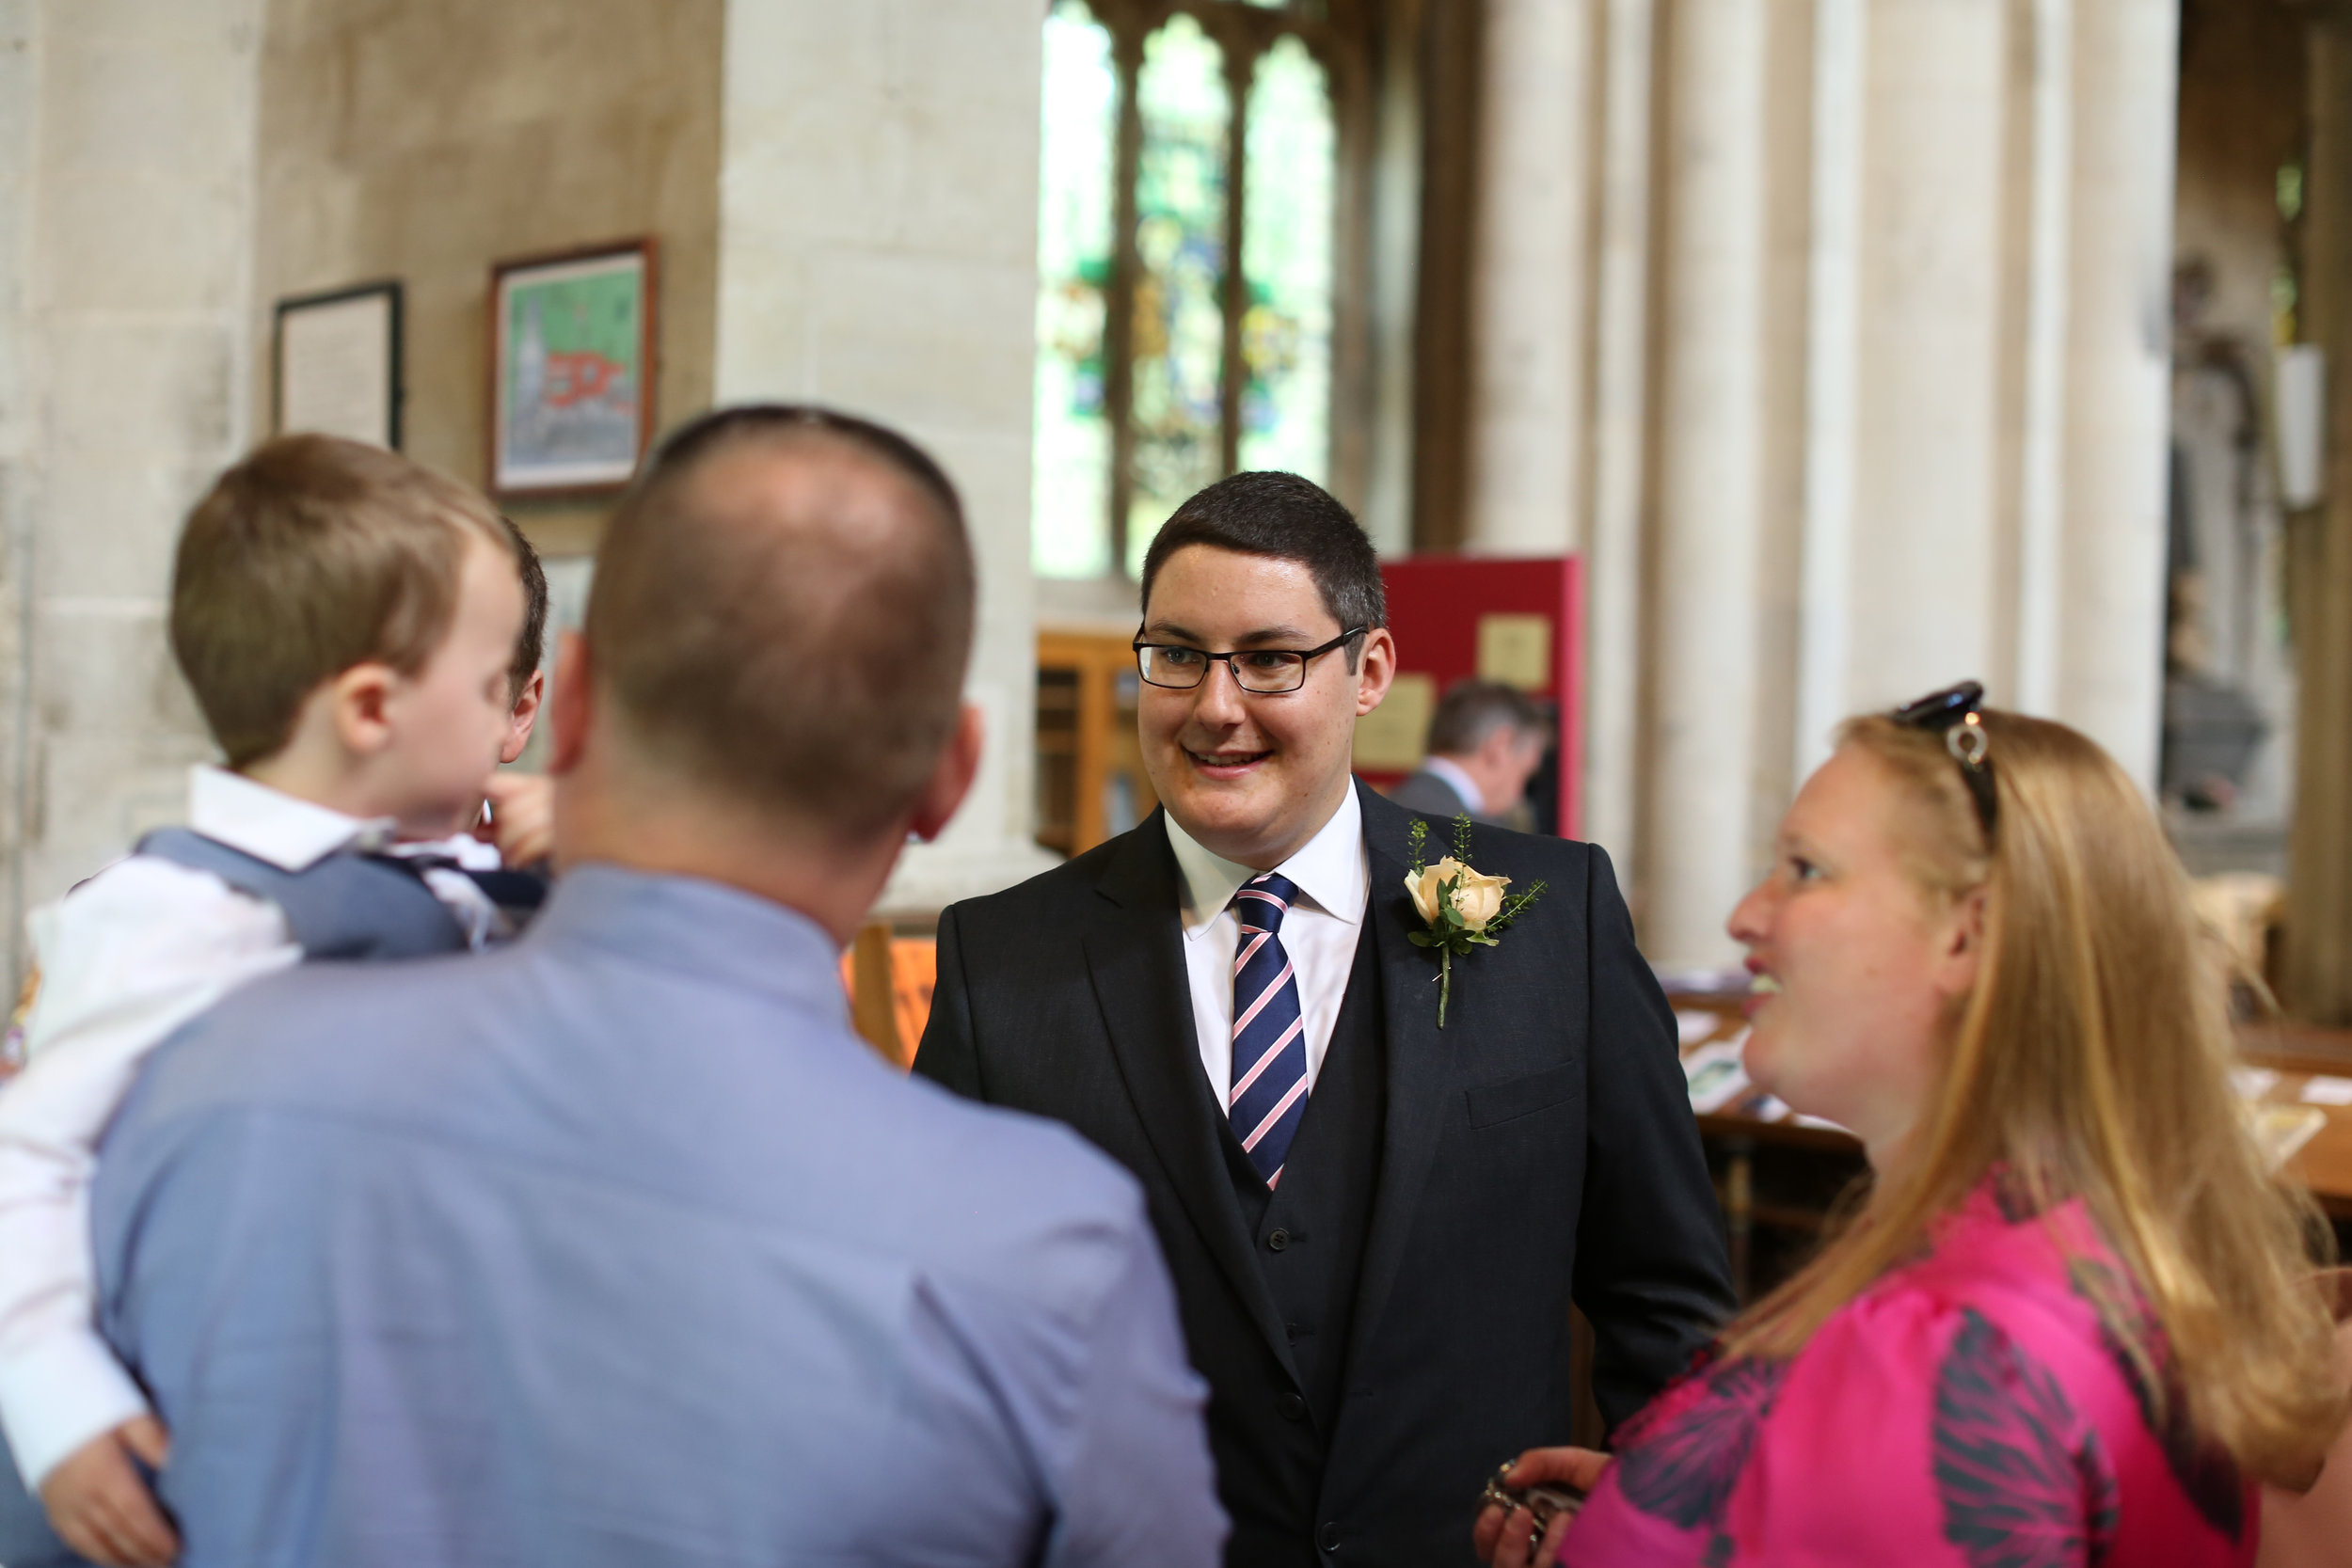 JELLYFISH WEDDING PHOTOGRAPHY THE PRIORY ST PETER CHURCH DUNSTABLE (4).jpg